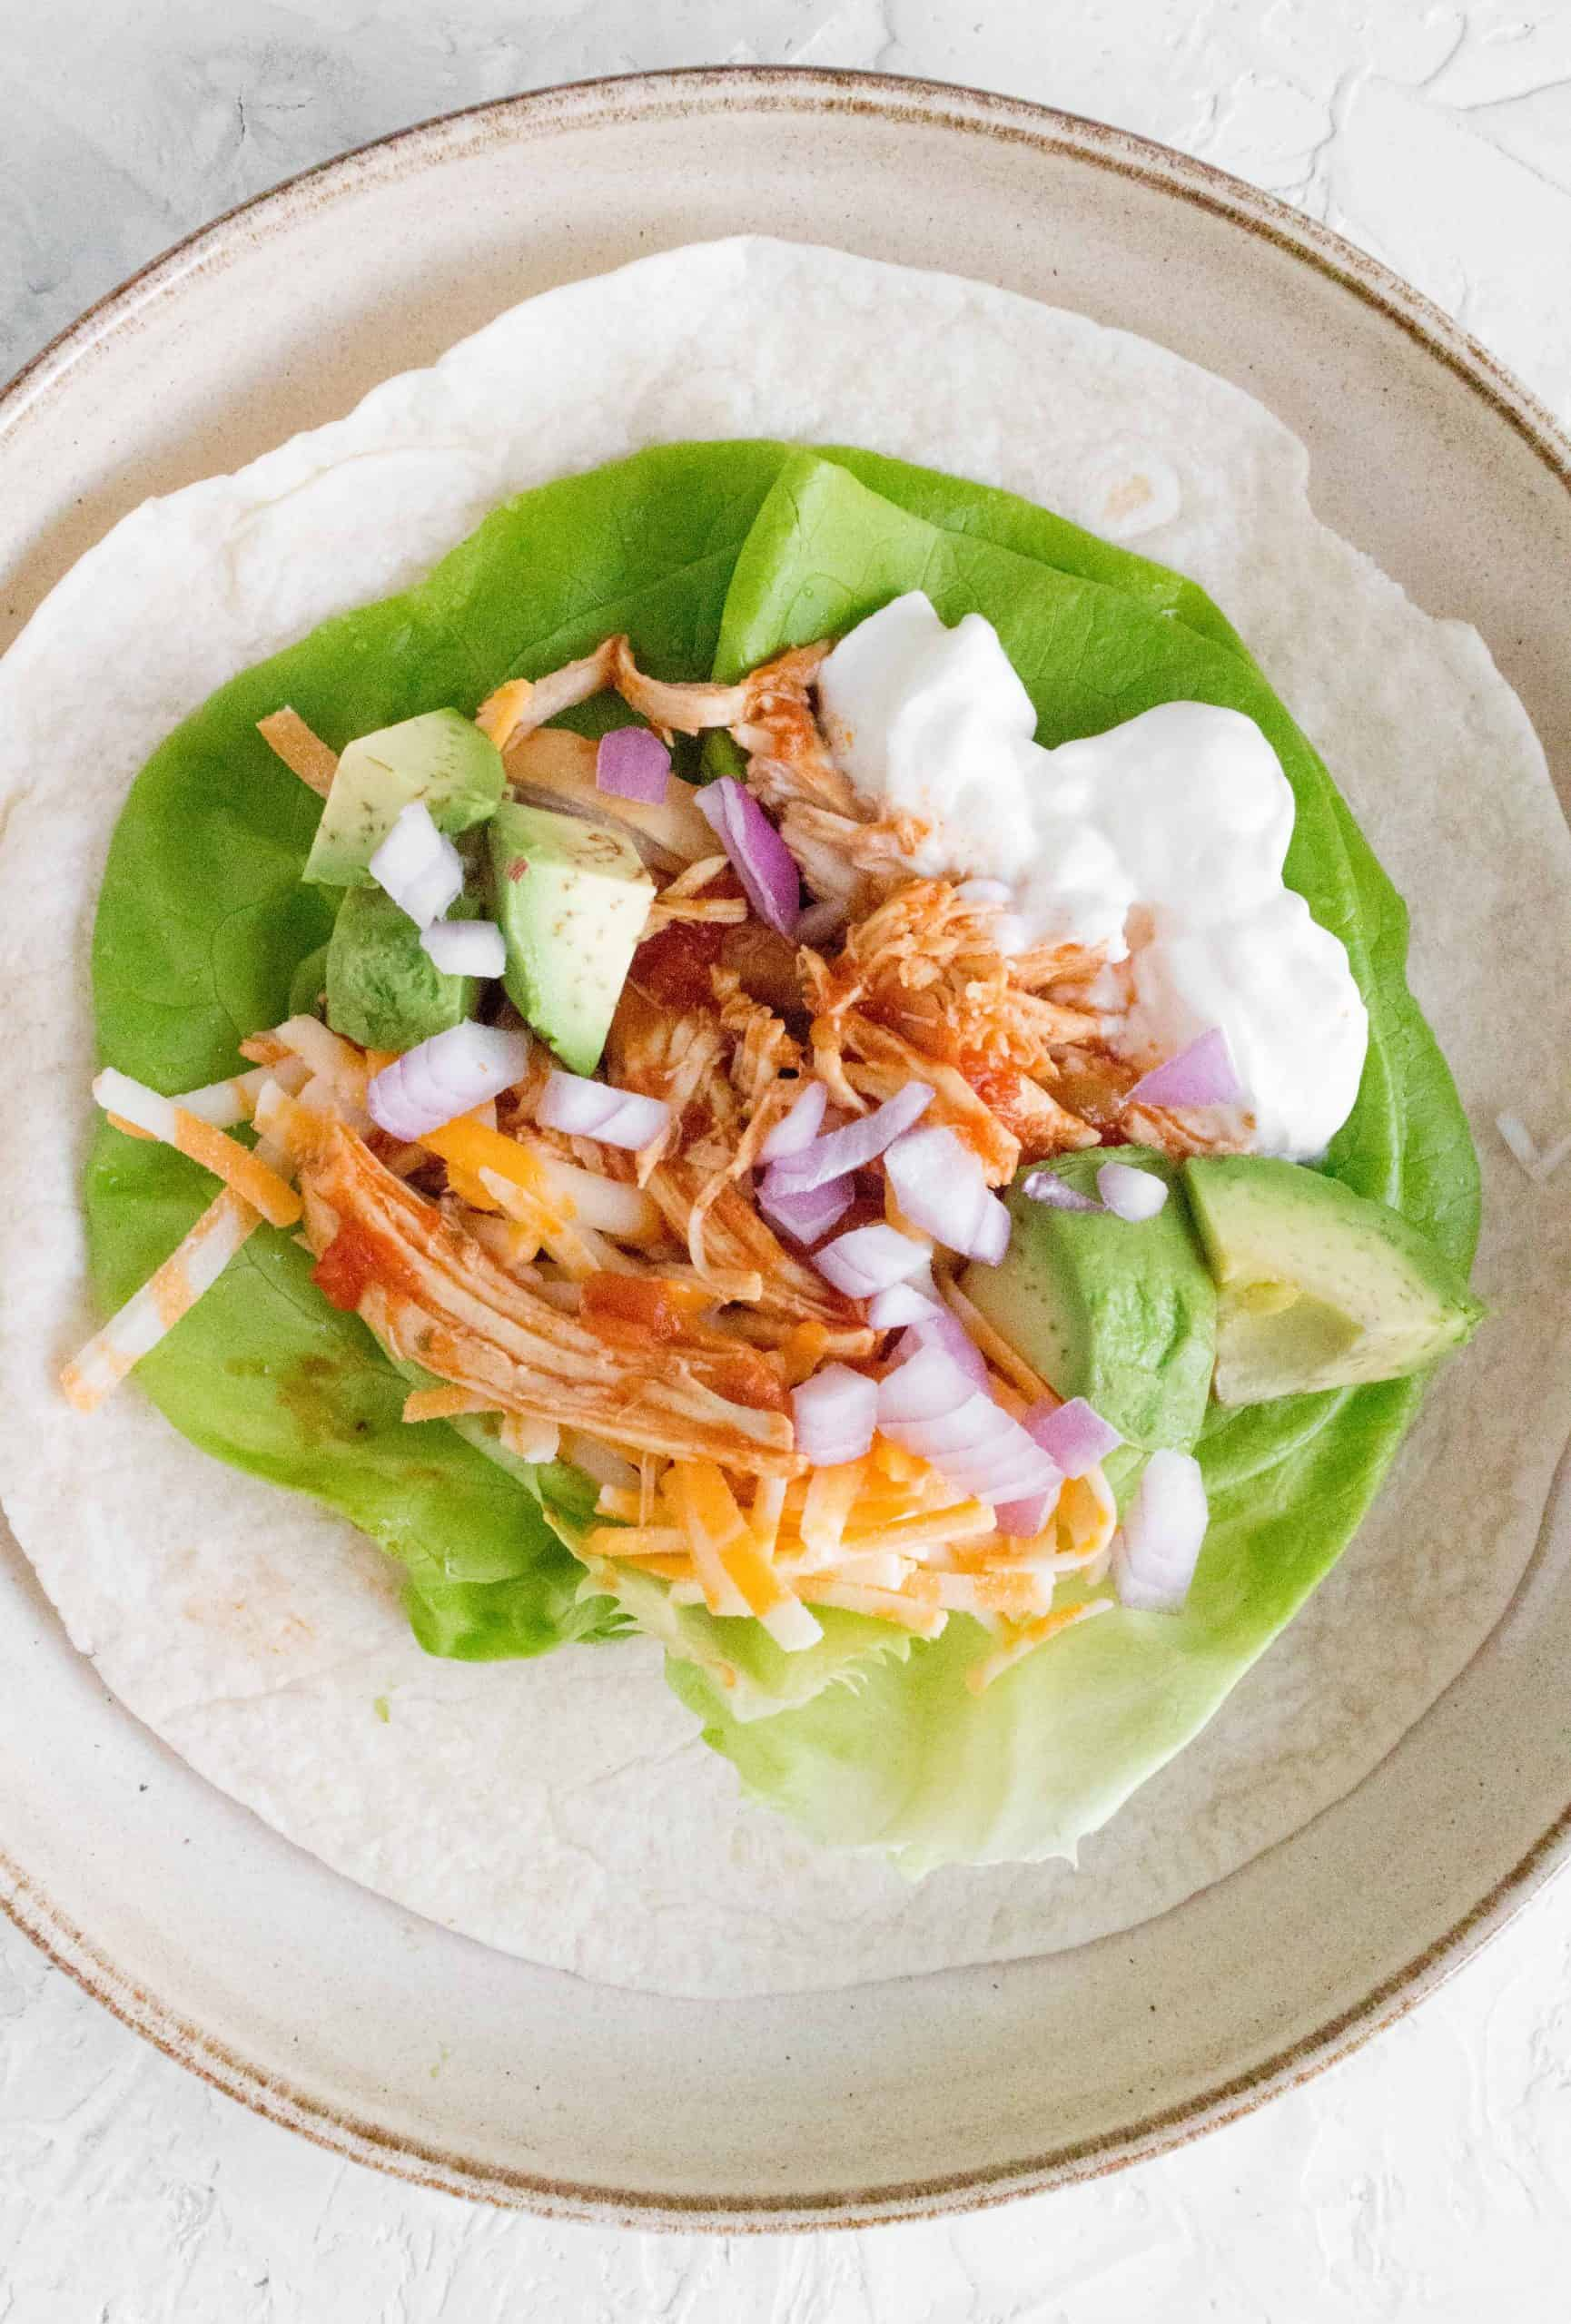 shredded chicken on top of lettuce and tortilla as an open faced taco